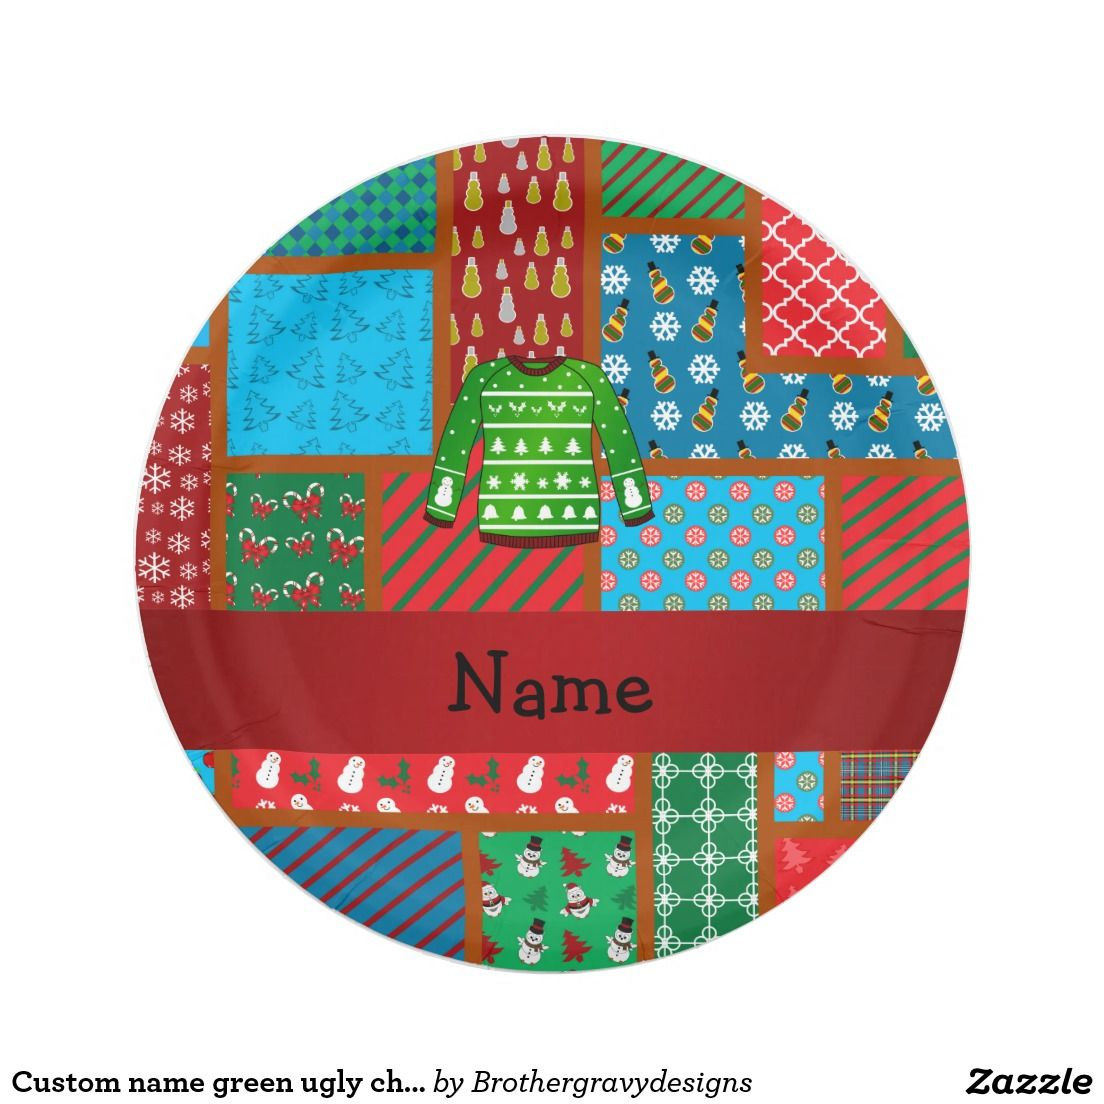 Create your own Paper Plate Christmas paper